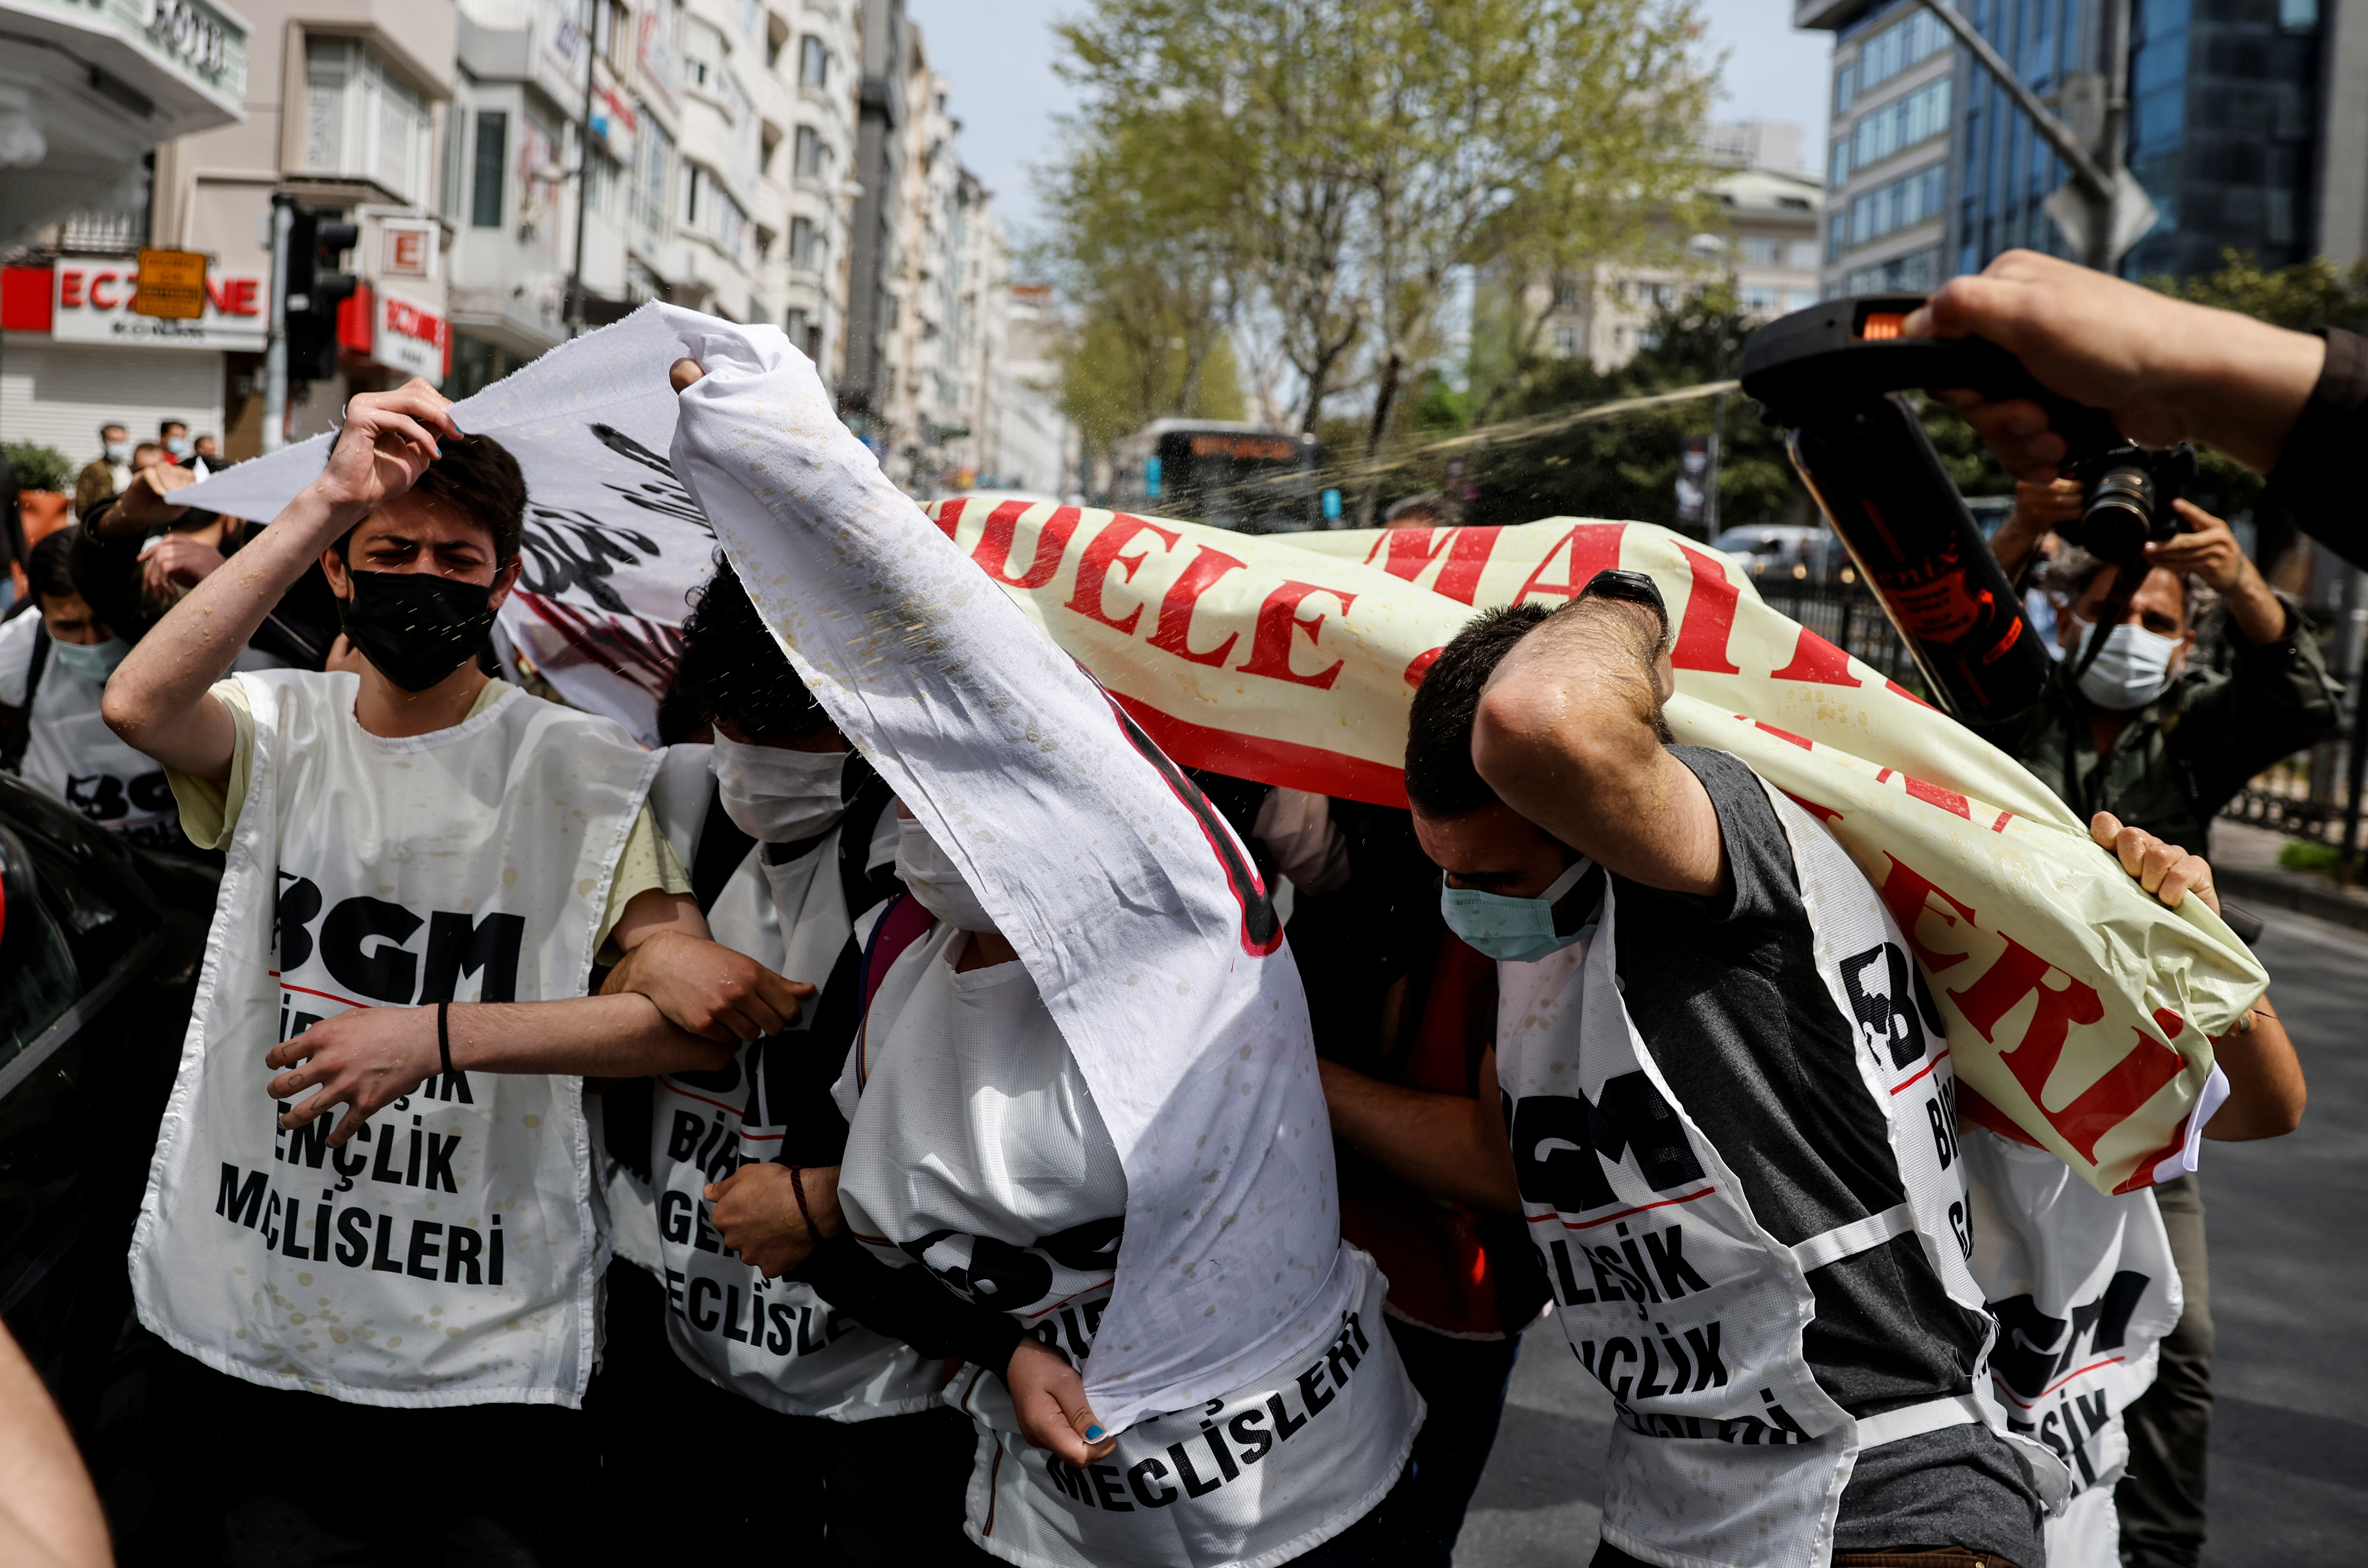 """A police officer uses pepper spray against demonstrators as they attempt to defy a ban and march on Taksim Square to celebrate May Day, during a nationwide """"full closure"""" imposed to slow the rate of the coronavirus disease (COVID-19) contagion, in Istanbul, Turkey May 1, 2021. REUTERS/Umit Bektas"""